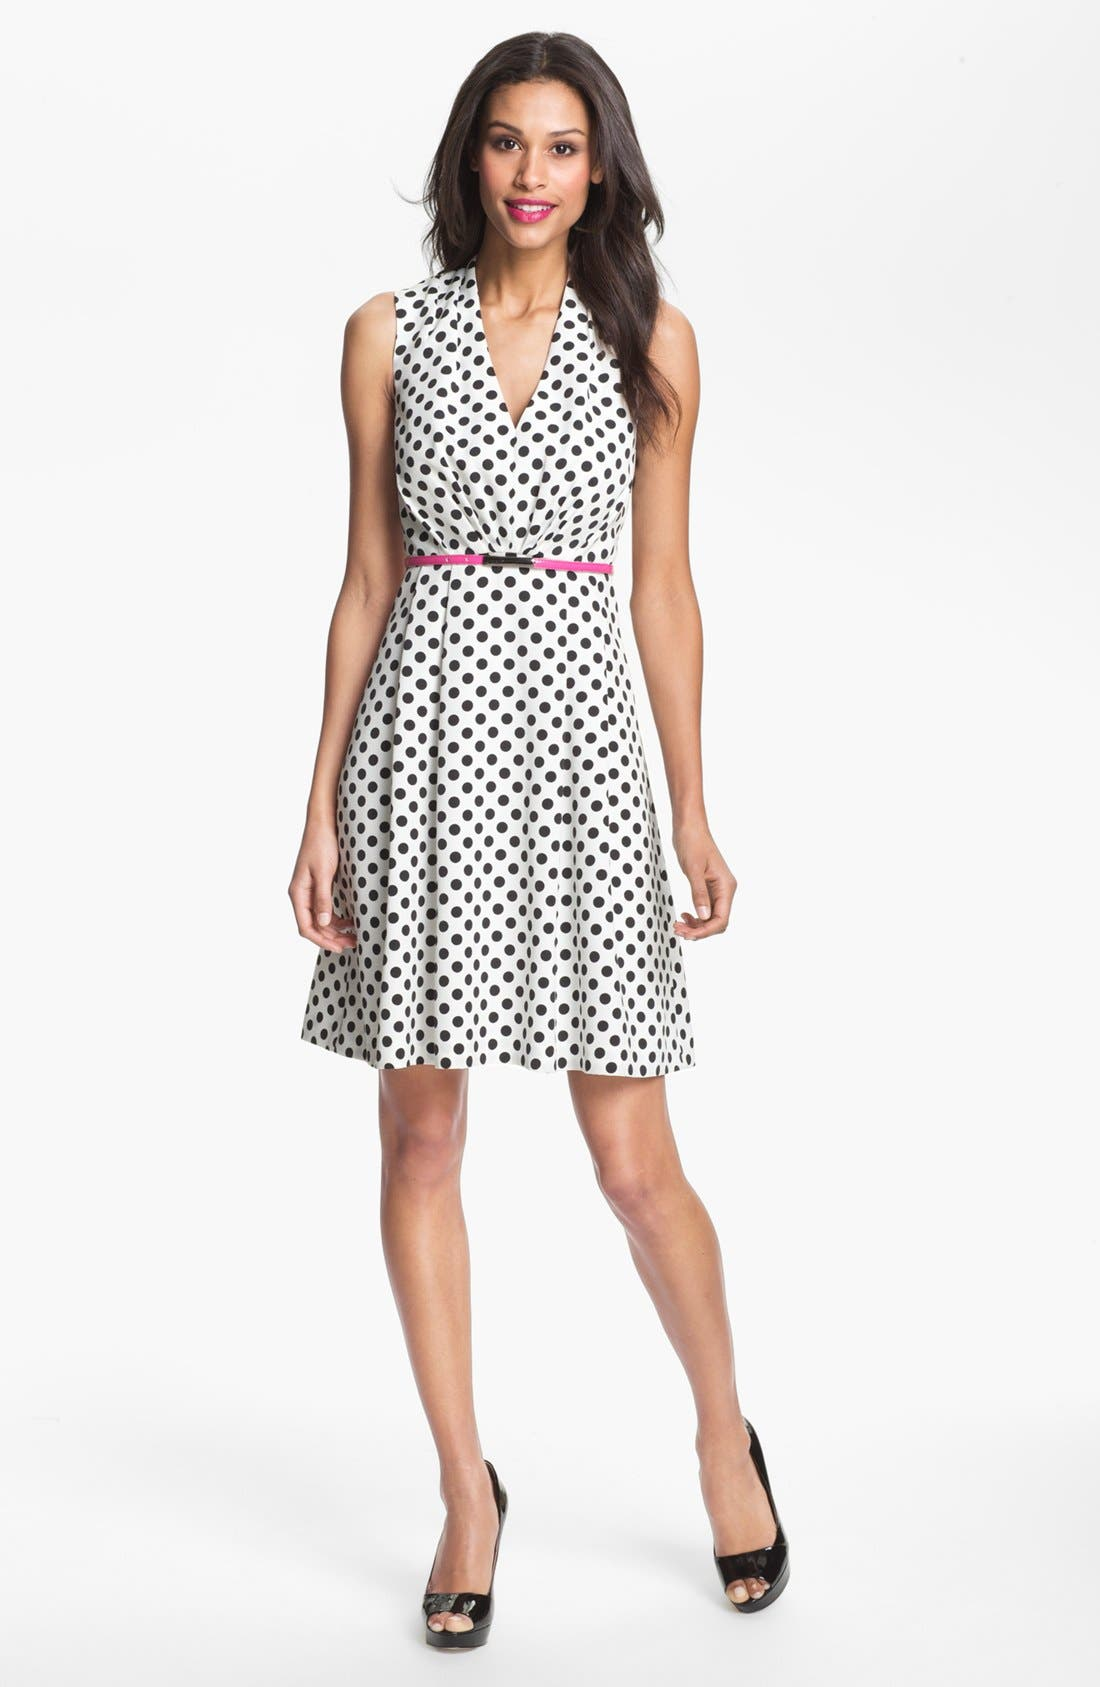 Alternate Image 1 Selected - Adrianna Papell Polka Dot Fit & Flare Dress (Petite)